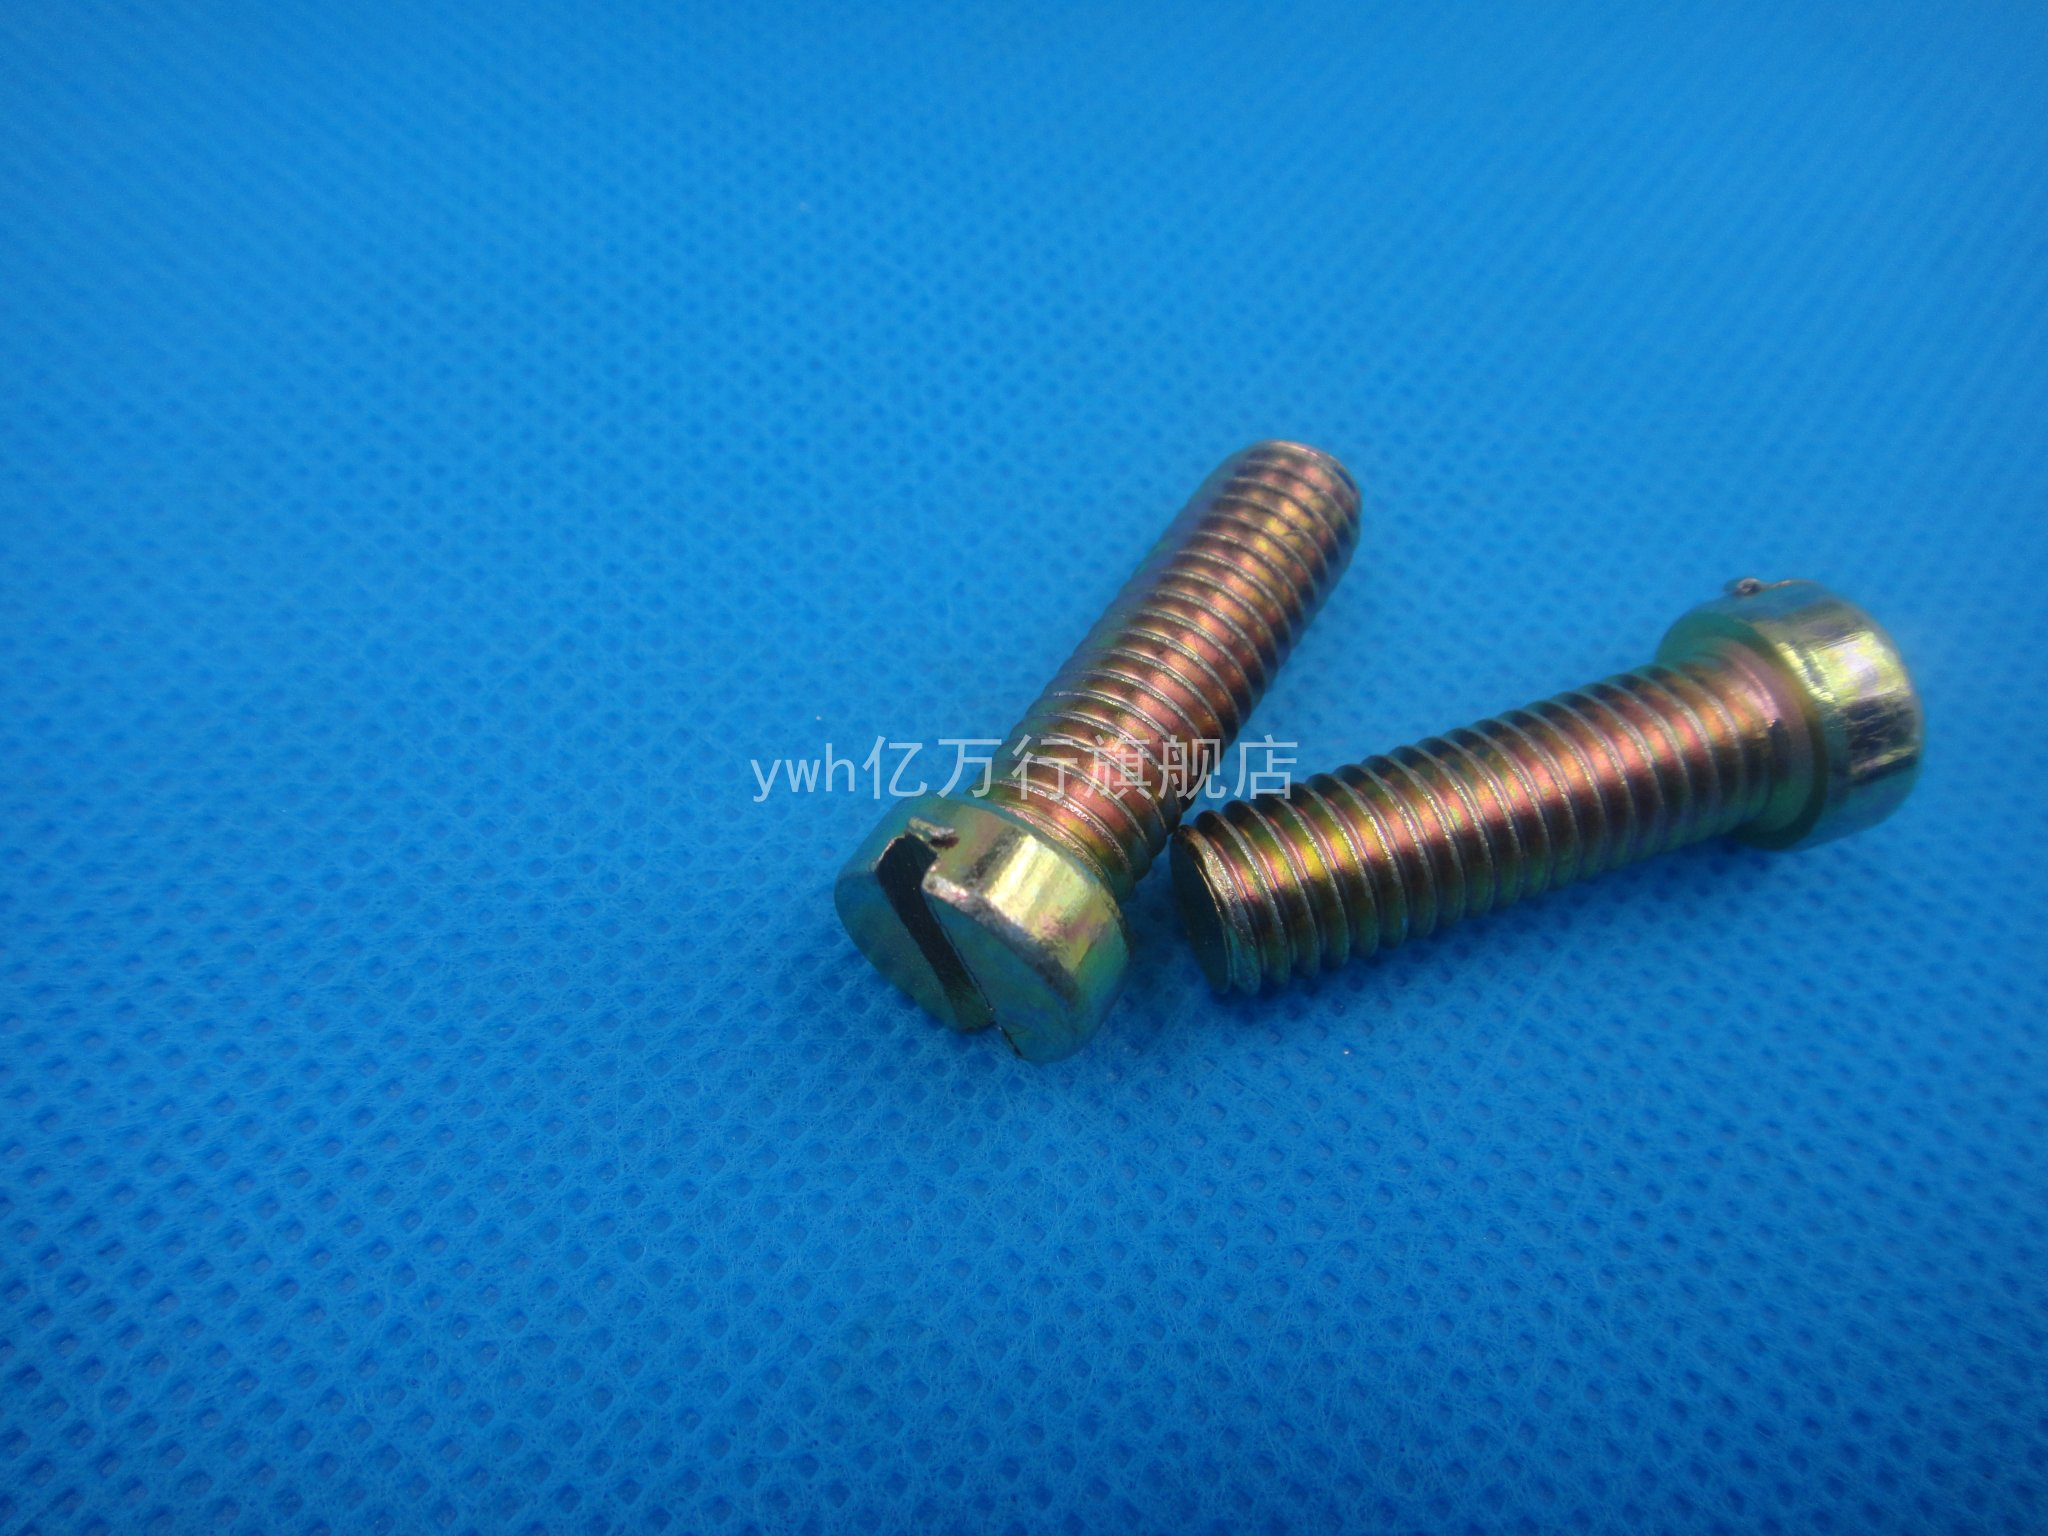 Slotted cylinder head screws color zinc plated screws gb65 word word slotted screw screw m6